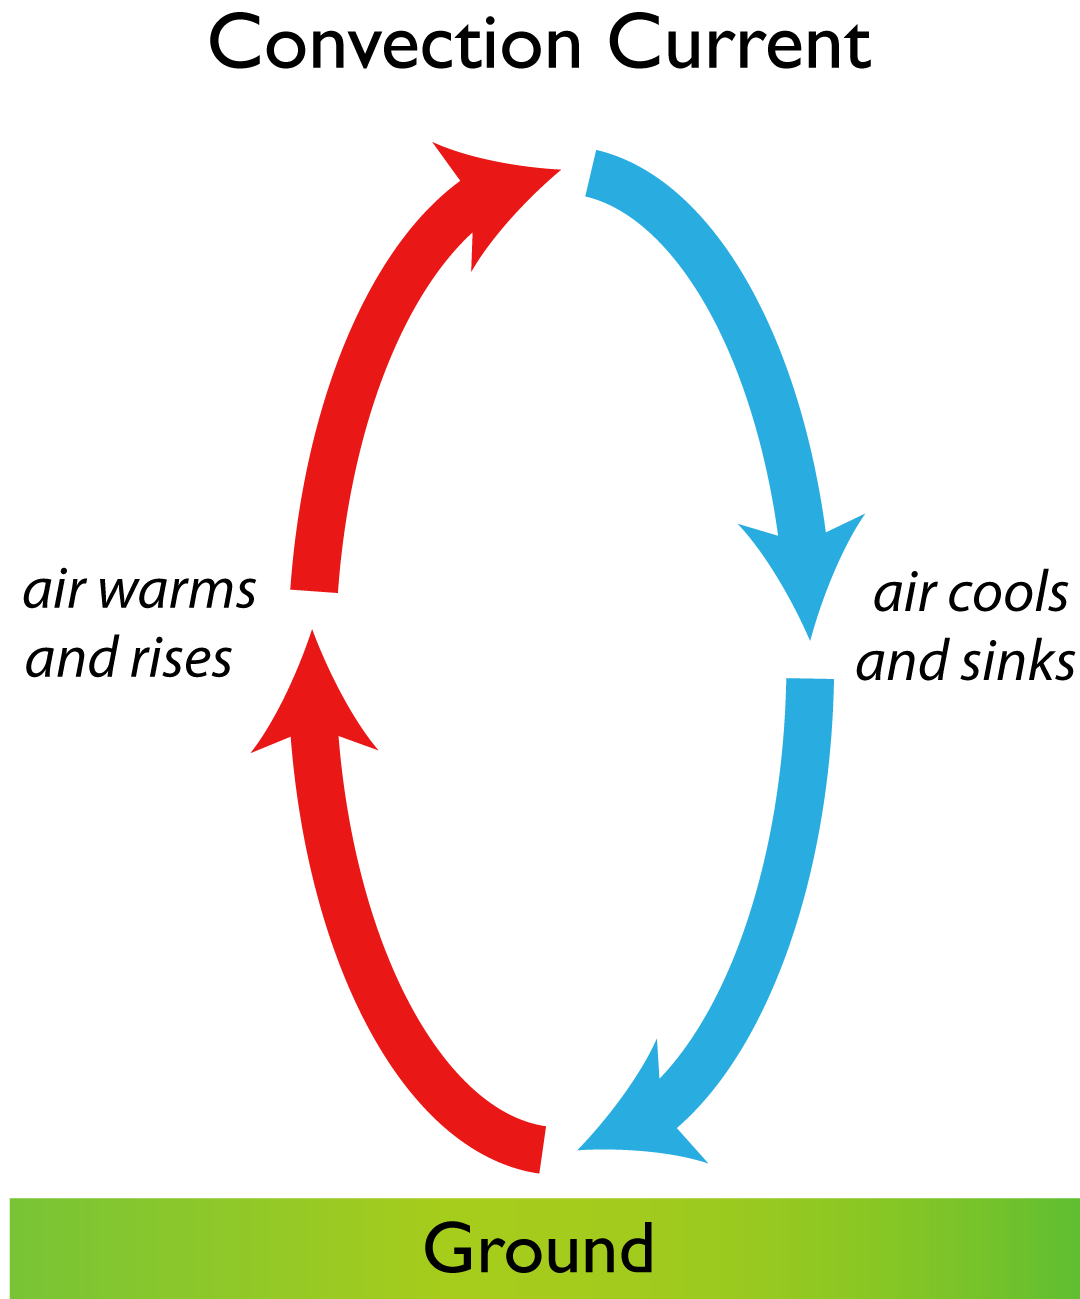 Convection Current The Circular Current Of Air Caused By Difference In Air Density Resulting